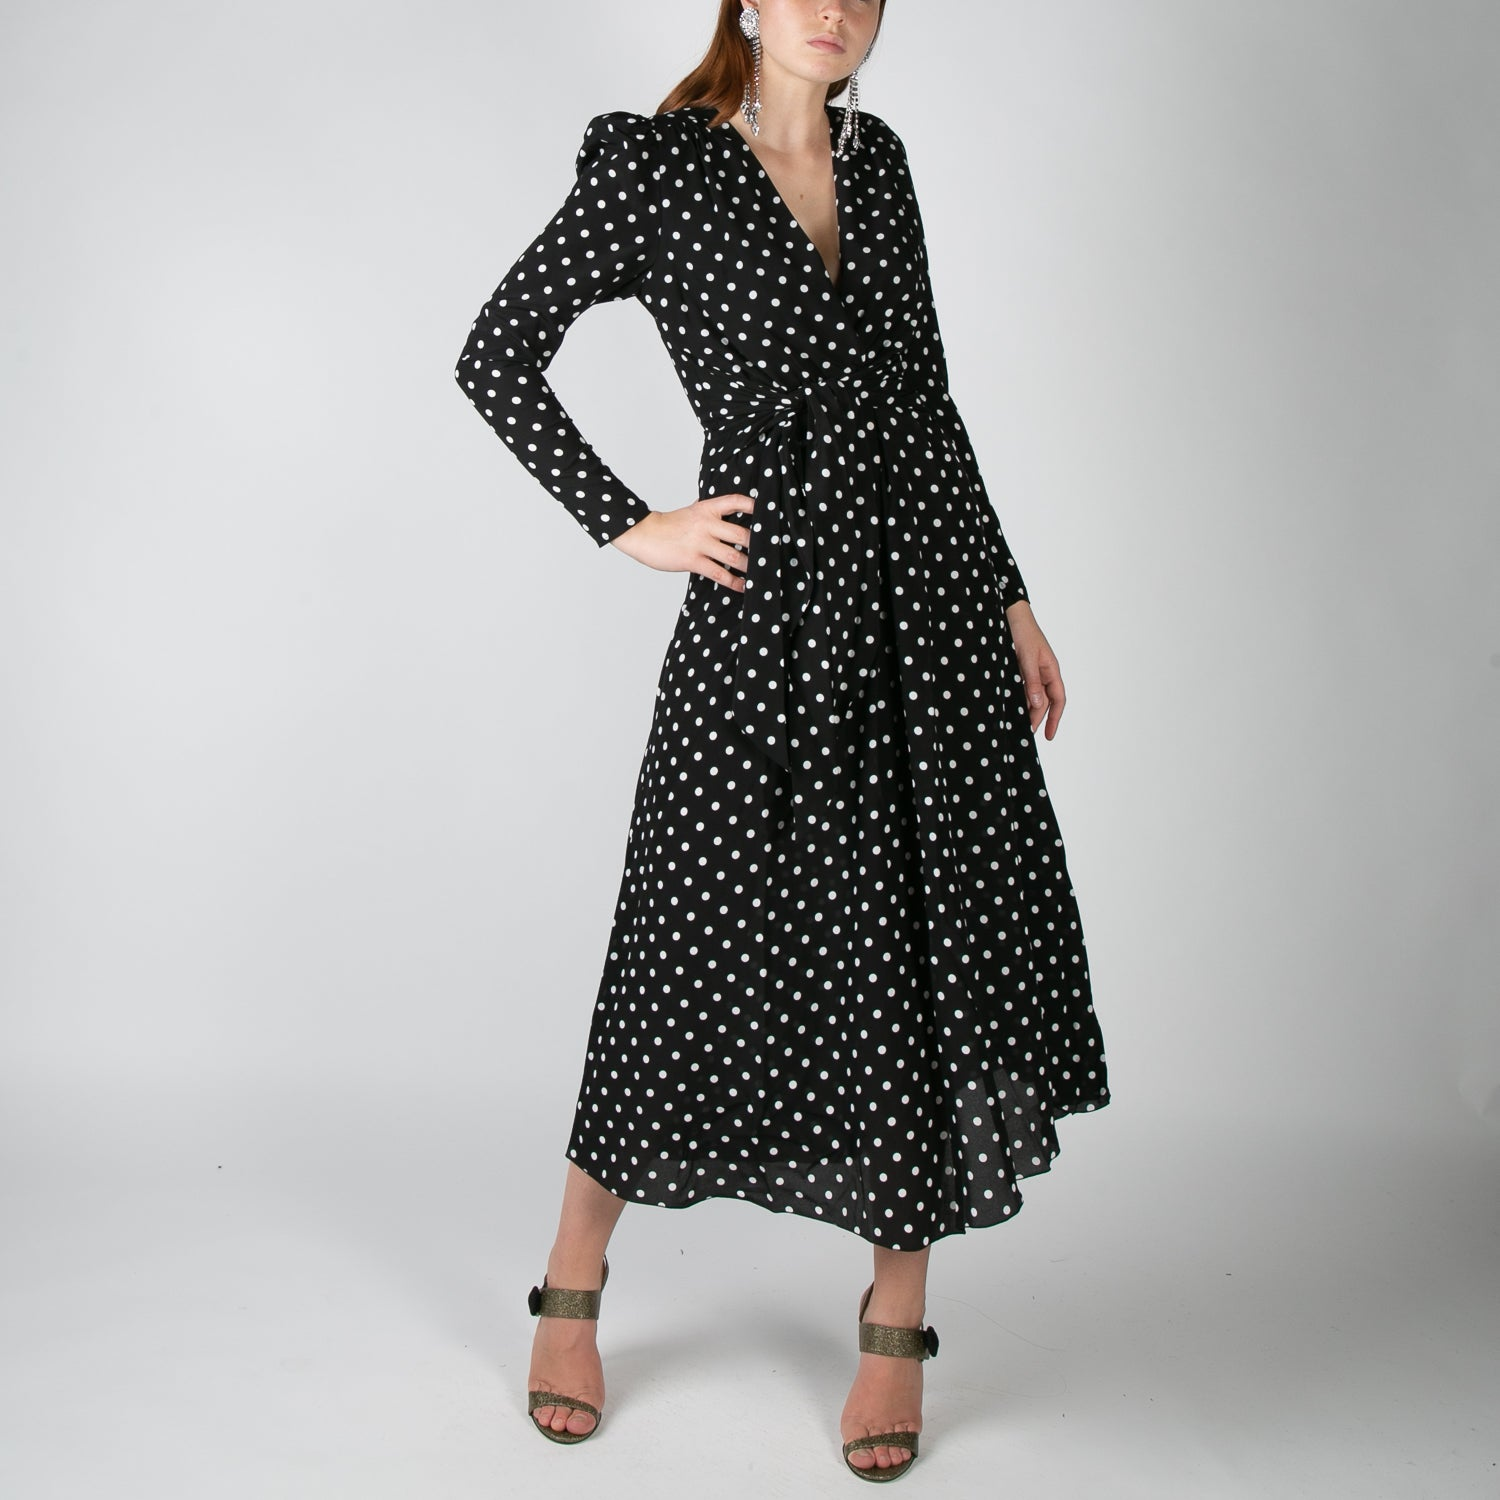 black and white polka dot silk dress by Alessandra Rich at Secret Location